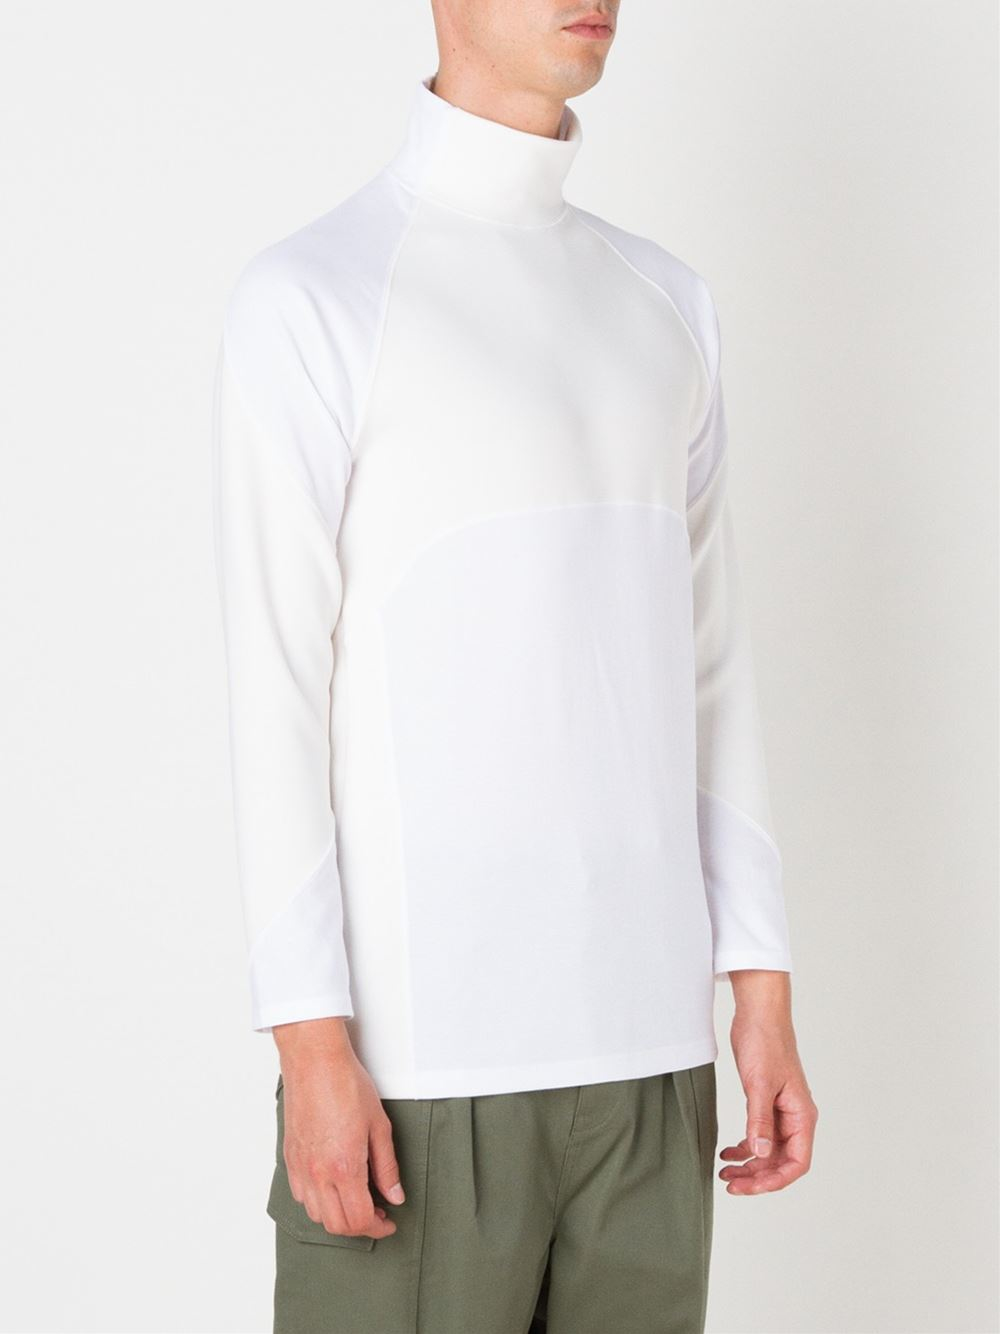 Shop for cotton turtleneck shirts online at Target. Free shipping on purchases over $35 and save 5% every day with your Target REDcard.